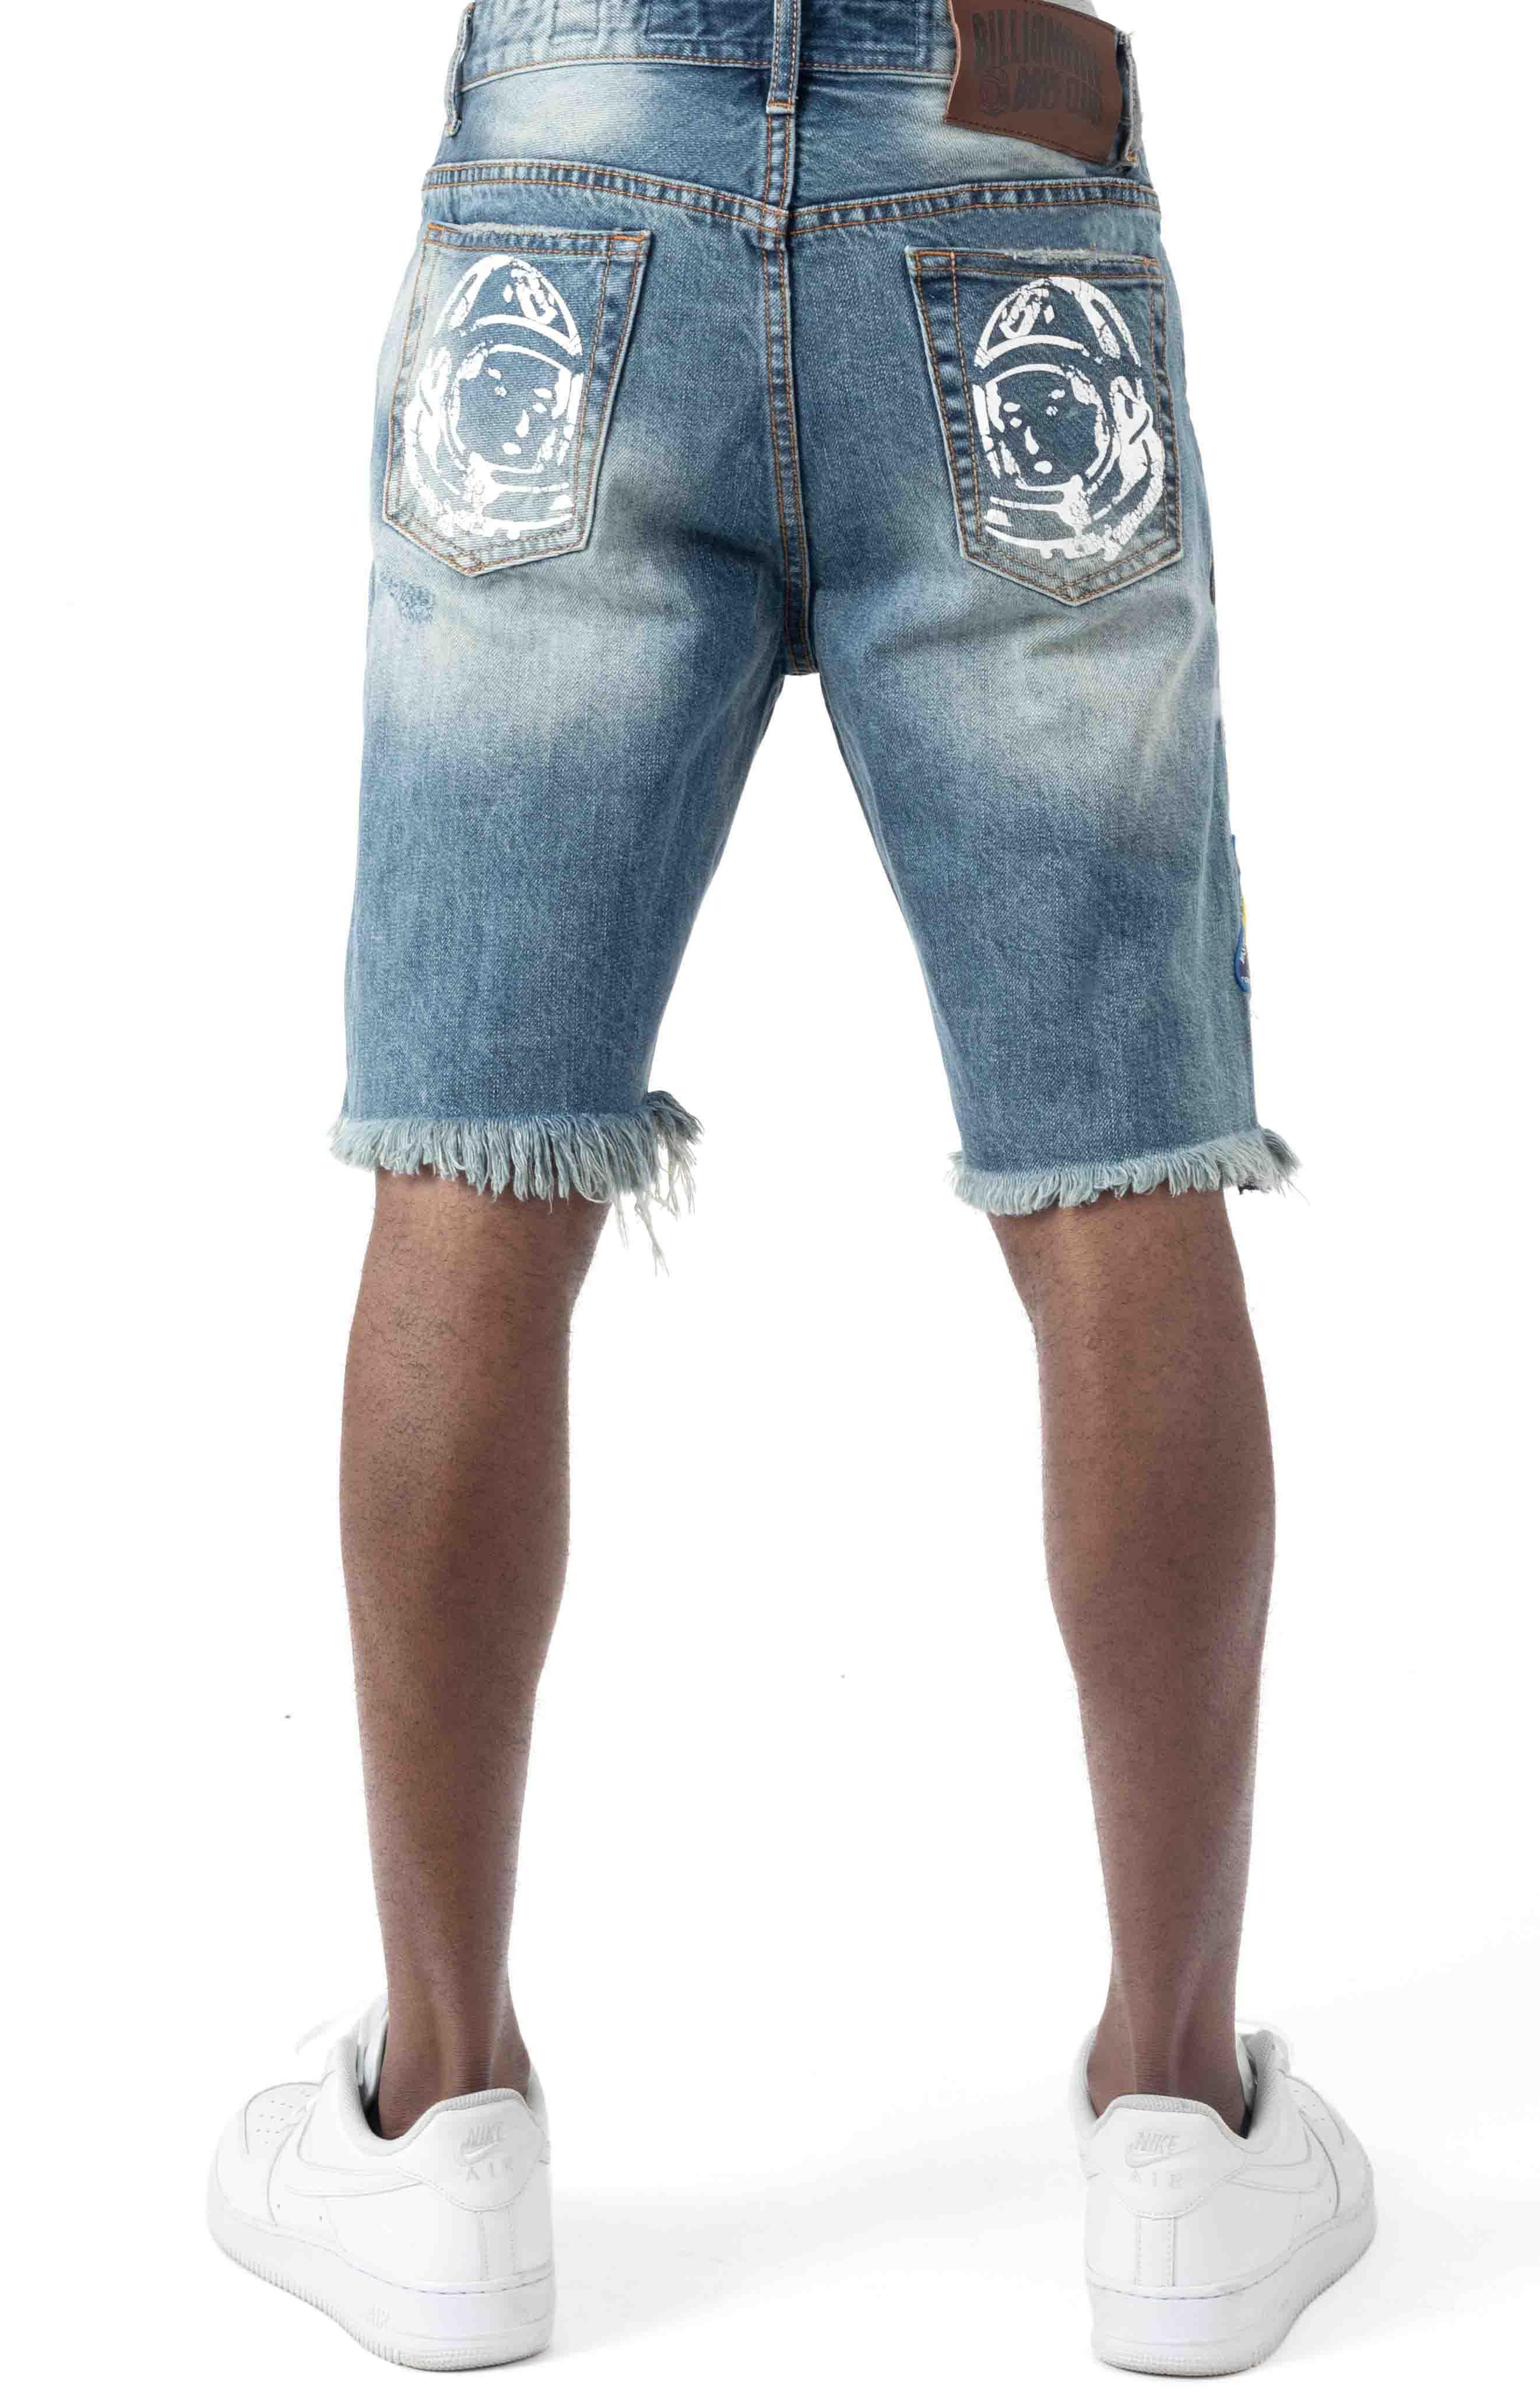 BB Expedition Jean Short - X 3